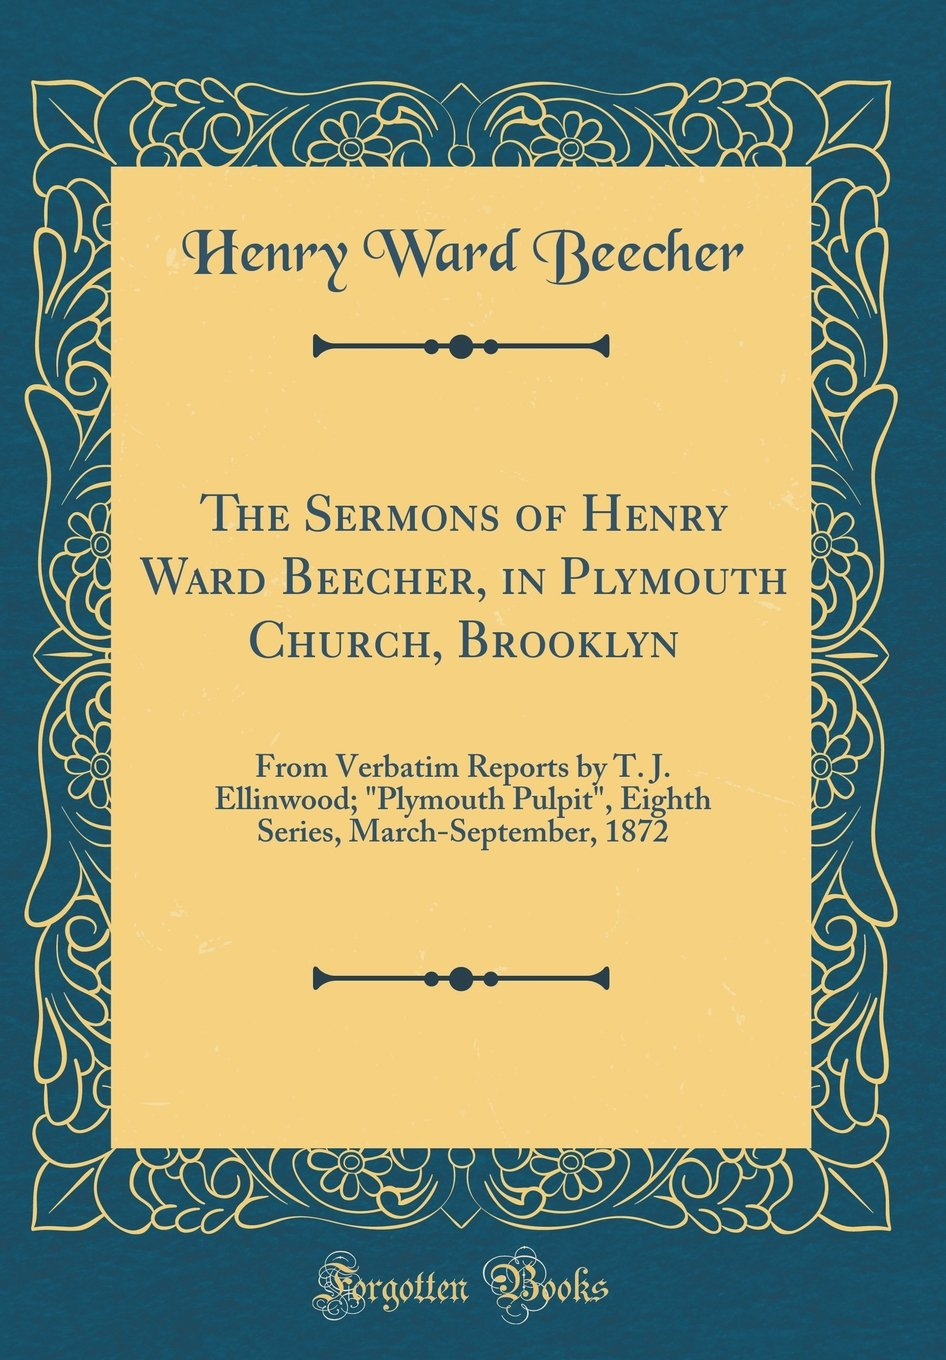 """Download The Sermons of Henry Ward Beecher, in Plymouth Church, Brooklyn: From Verbatim Reports by T. J. Ellinwood; """"Plymouth Pulpit"""", Eighth Series, March-September, 1872 (Classic Reprint) PDF"""